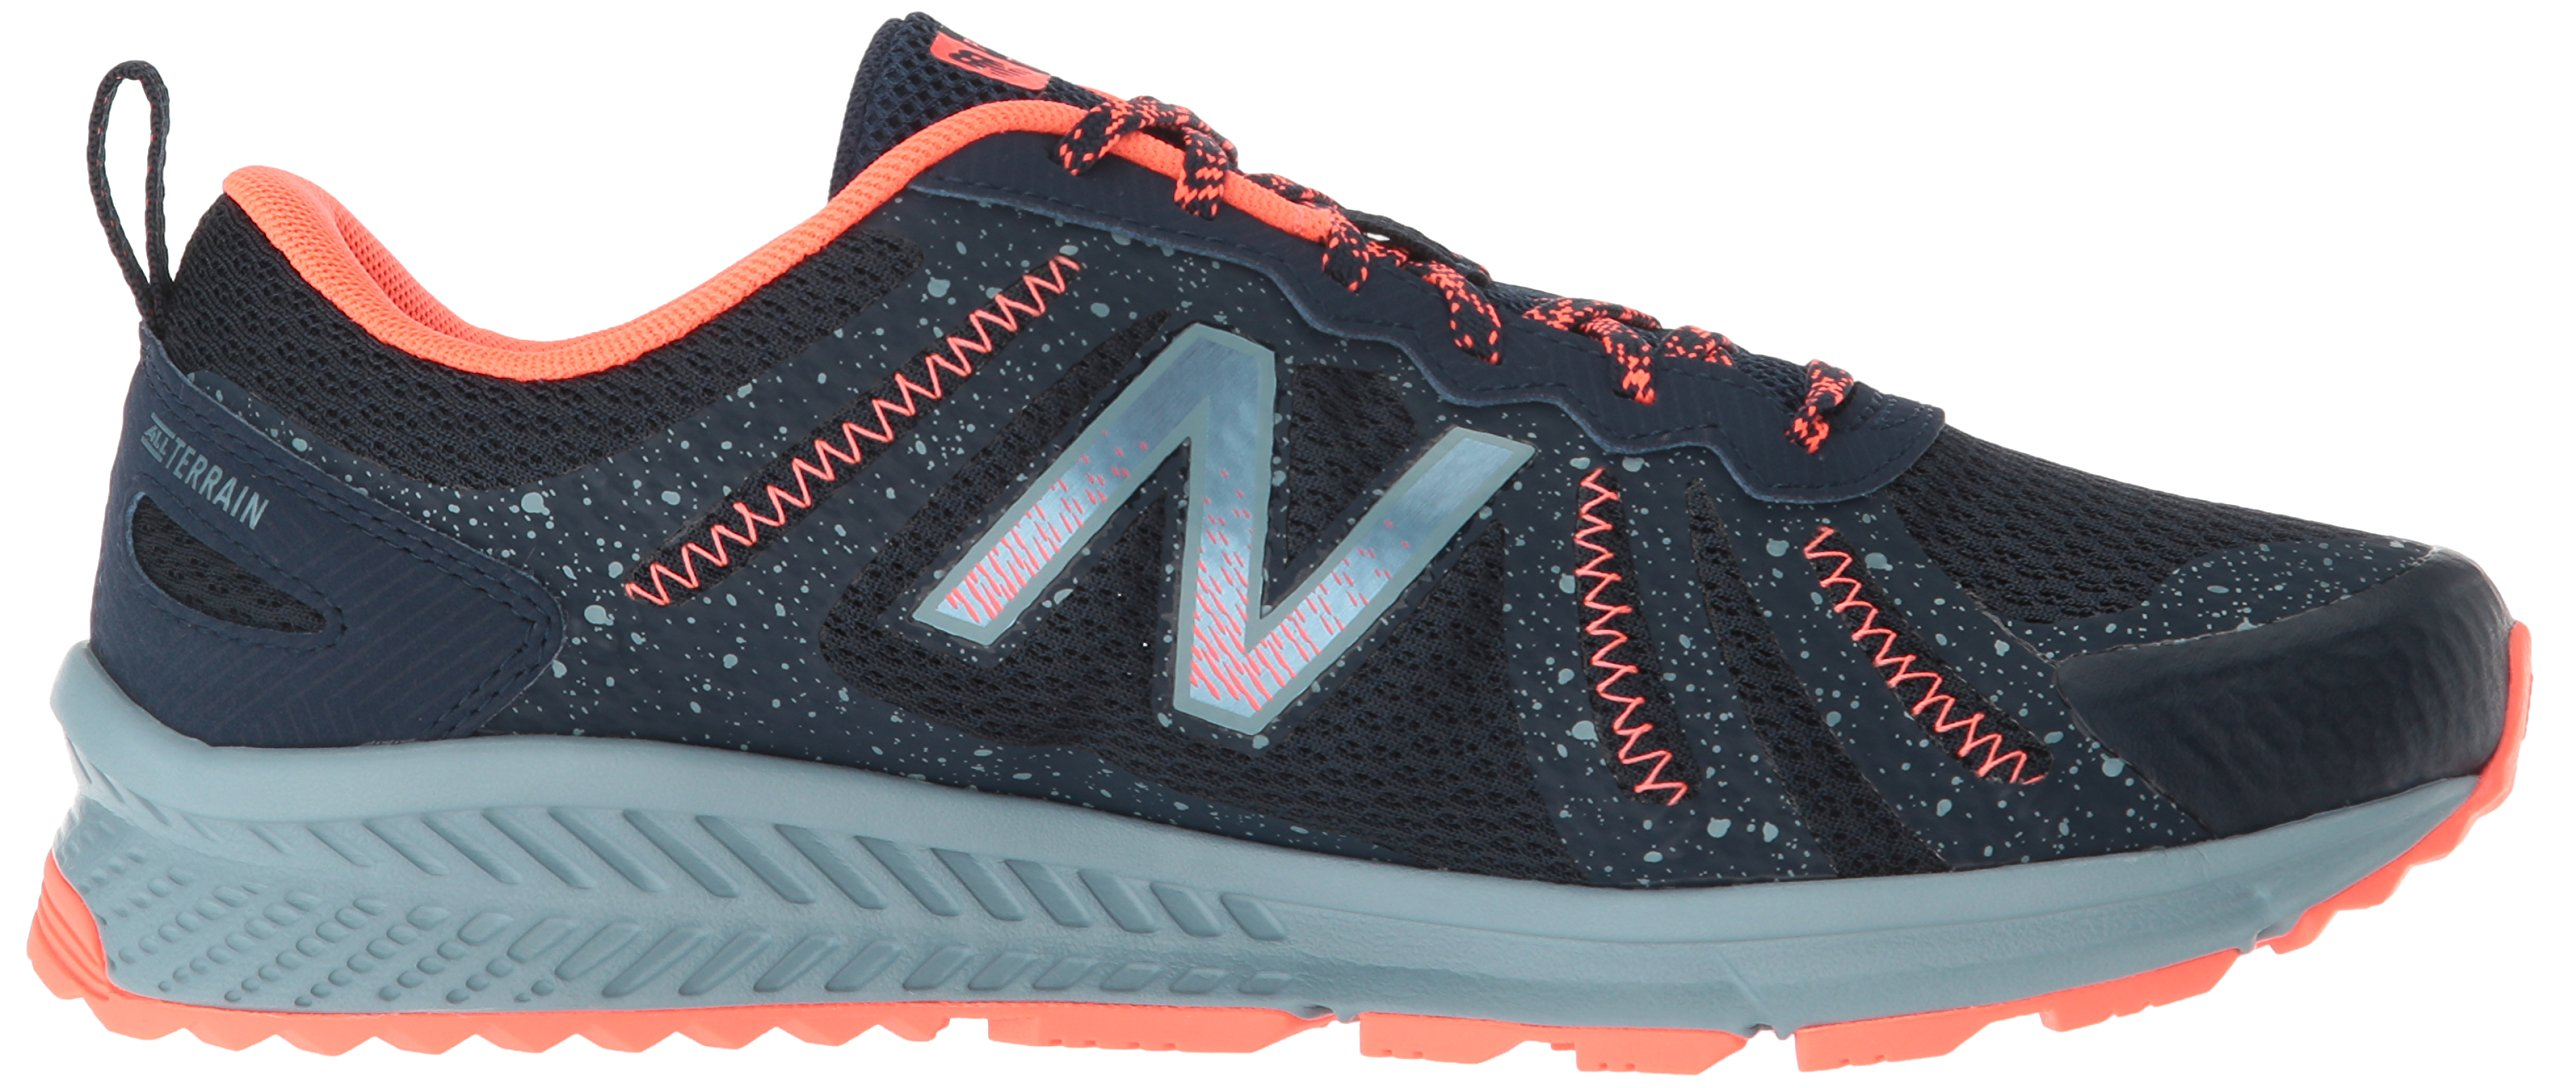 New Balance Women's 590v4 FuelCore Trail Running Shoe, Galaxy, 5.5 B US by New Balance (Image #6)